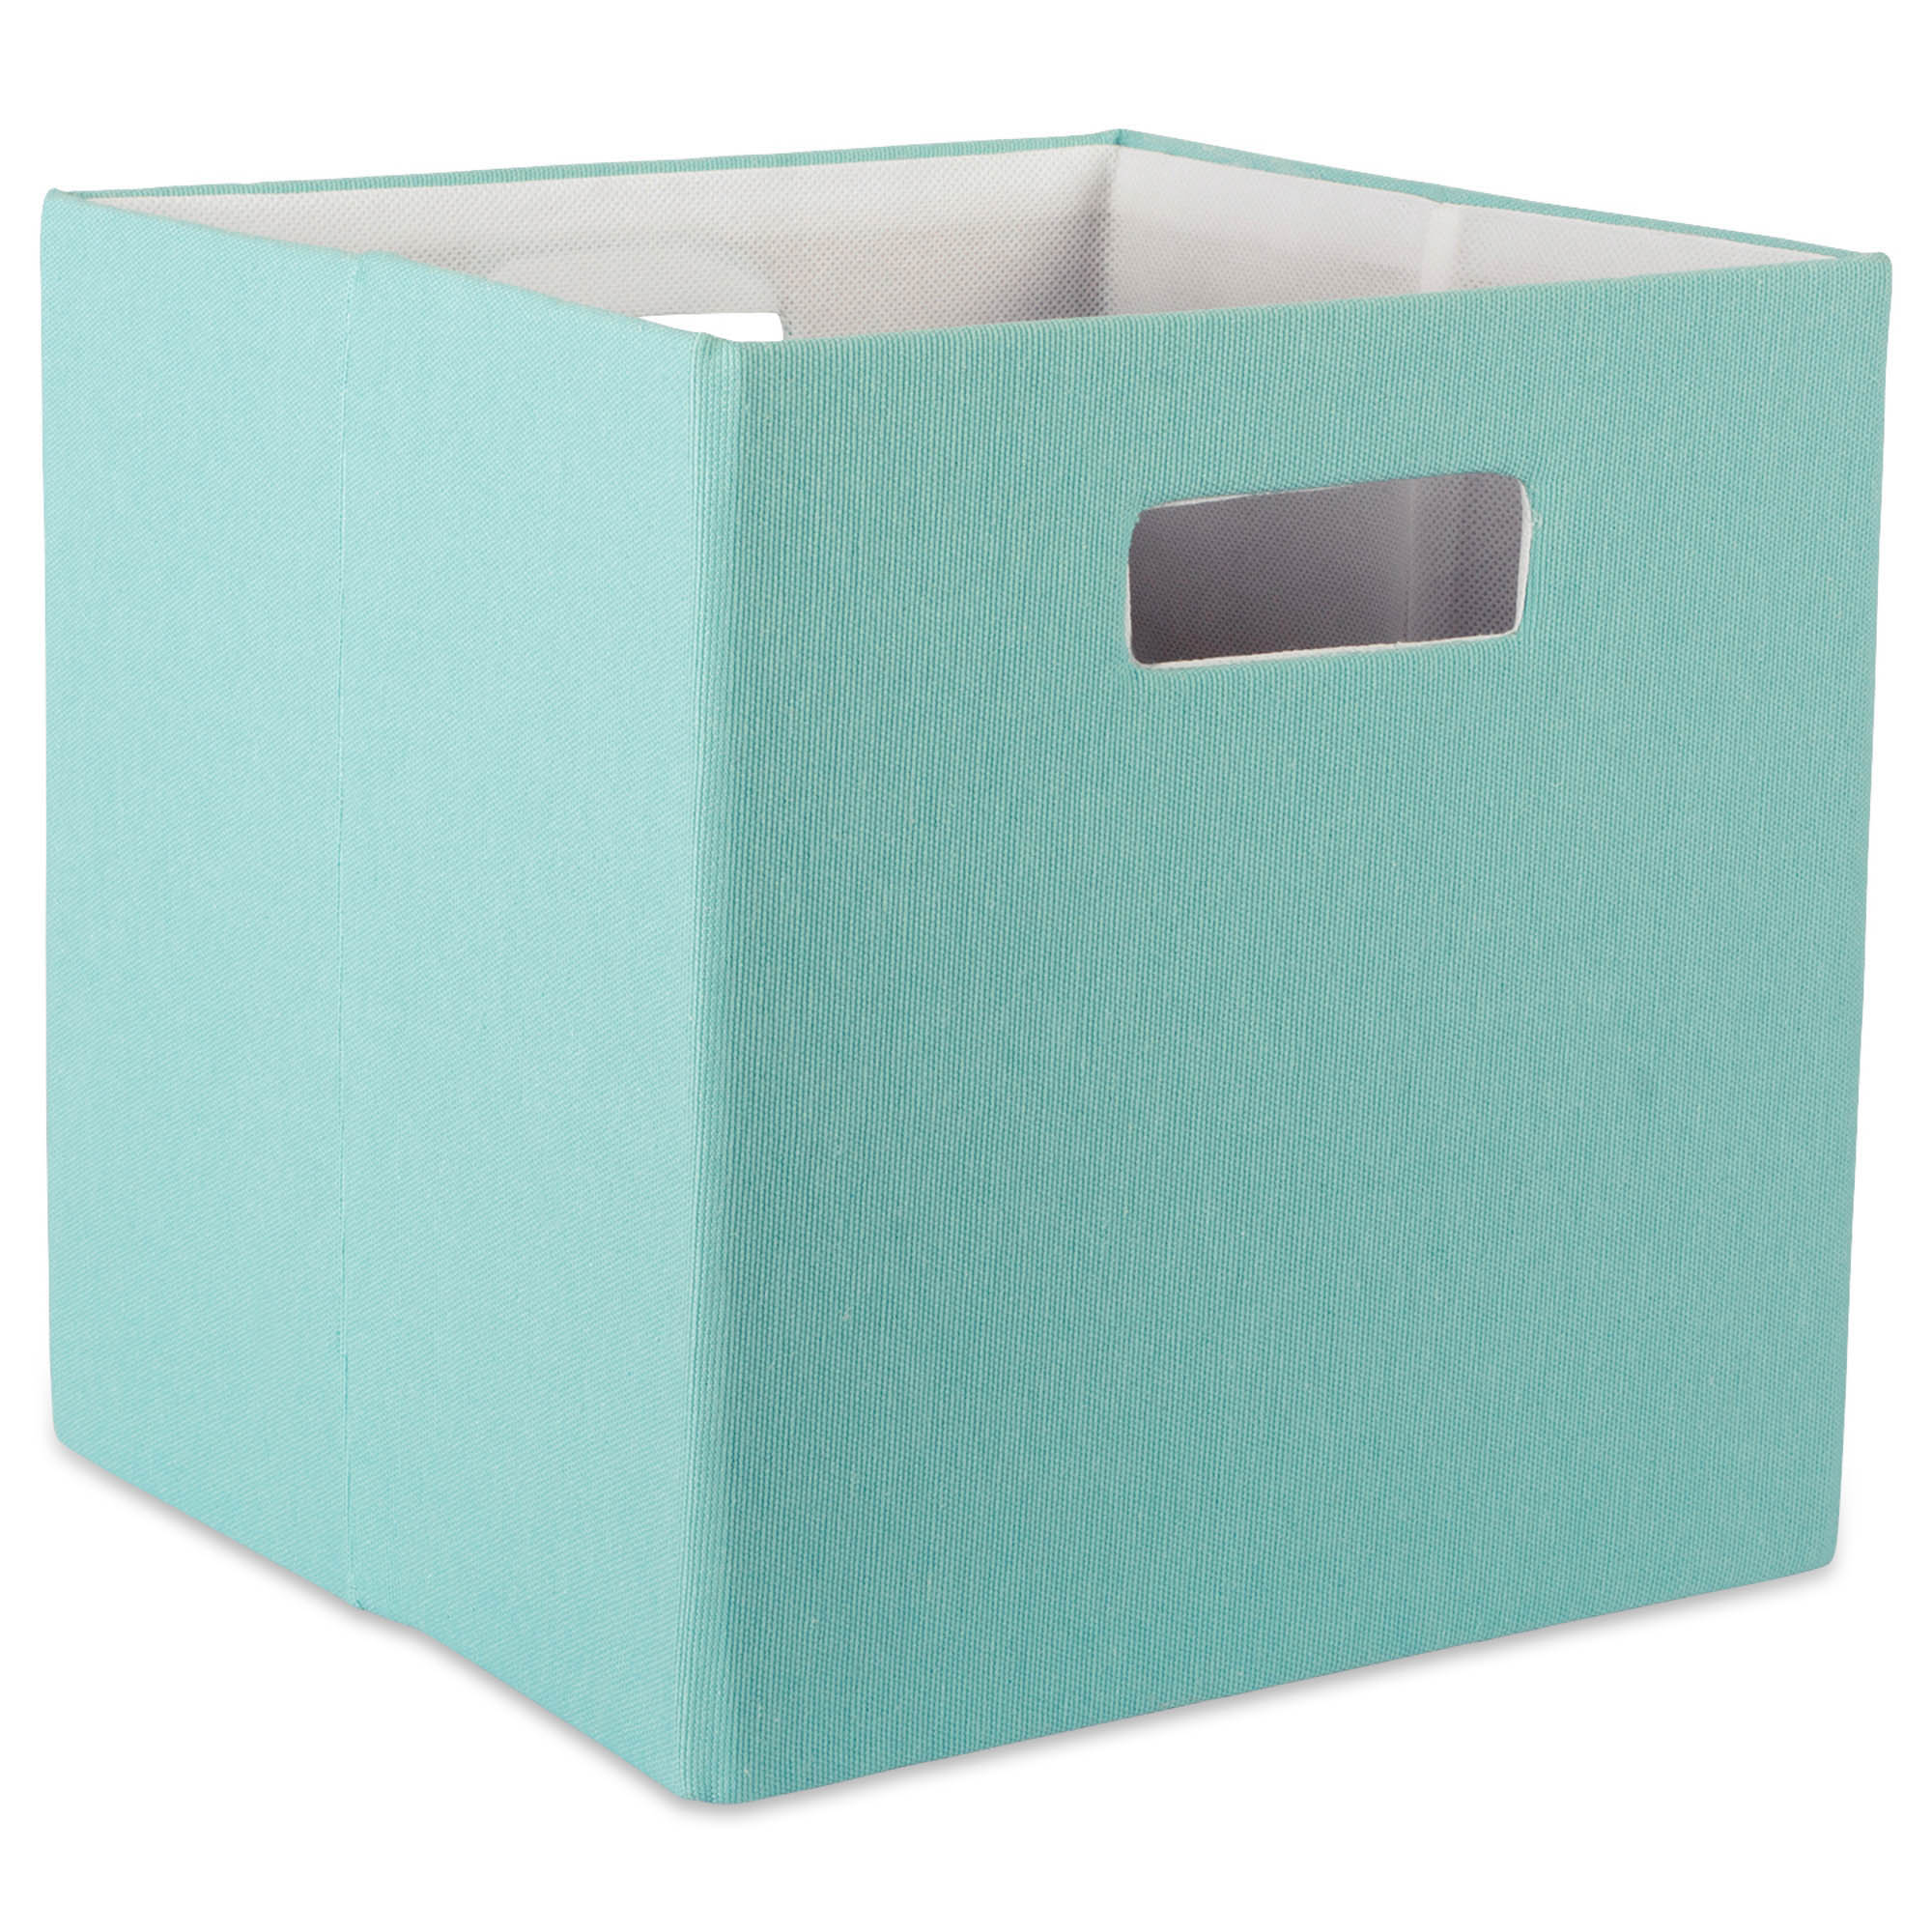 Charmant DII Hard Sided Collapsible Fabric Storage Container For Nursery, Offices, U0026  Home Organization, Containers Are Made To Fit Standard Cube Organizers ...